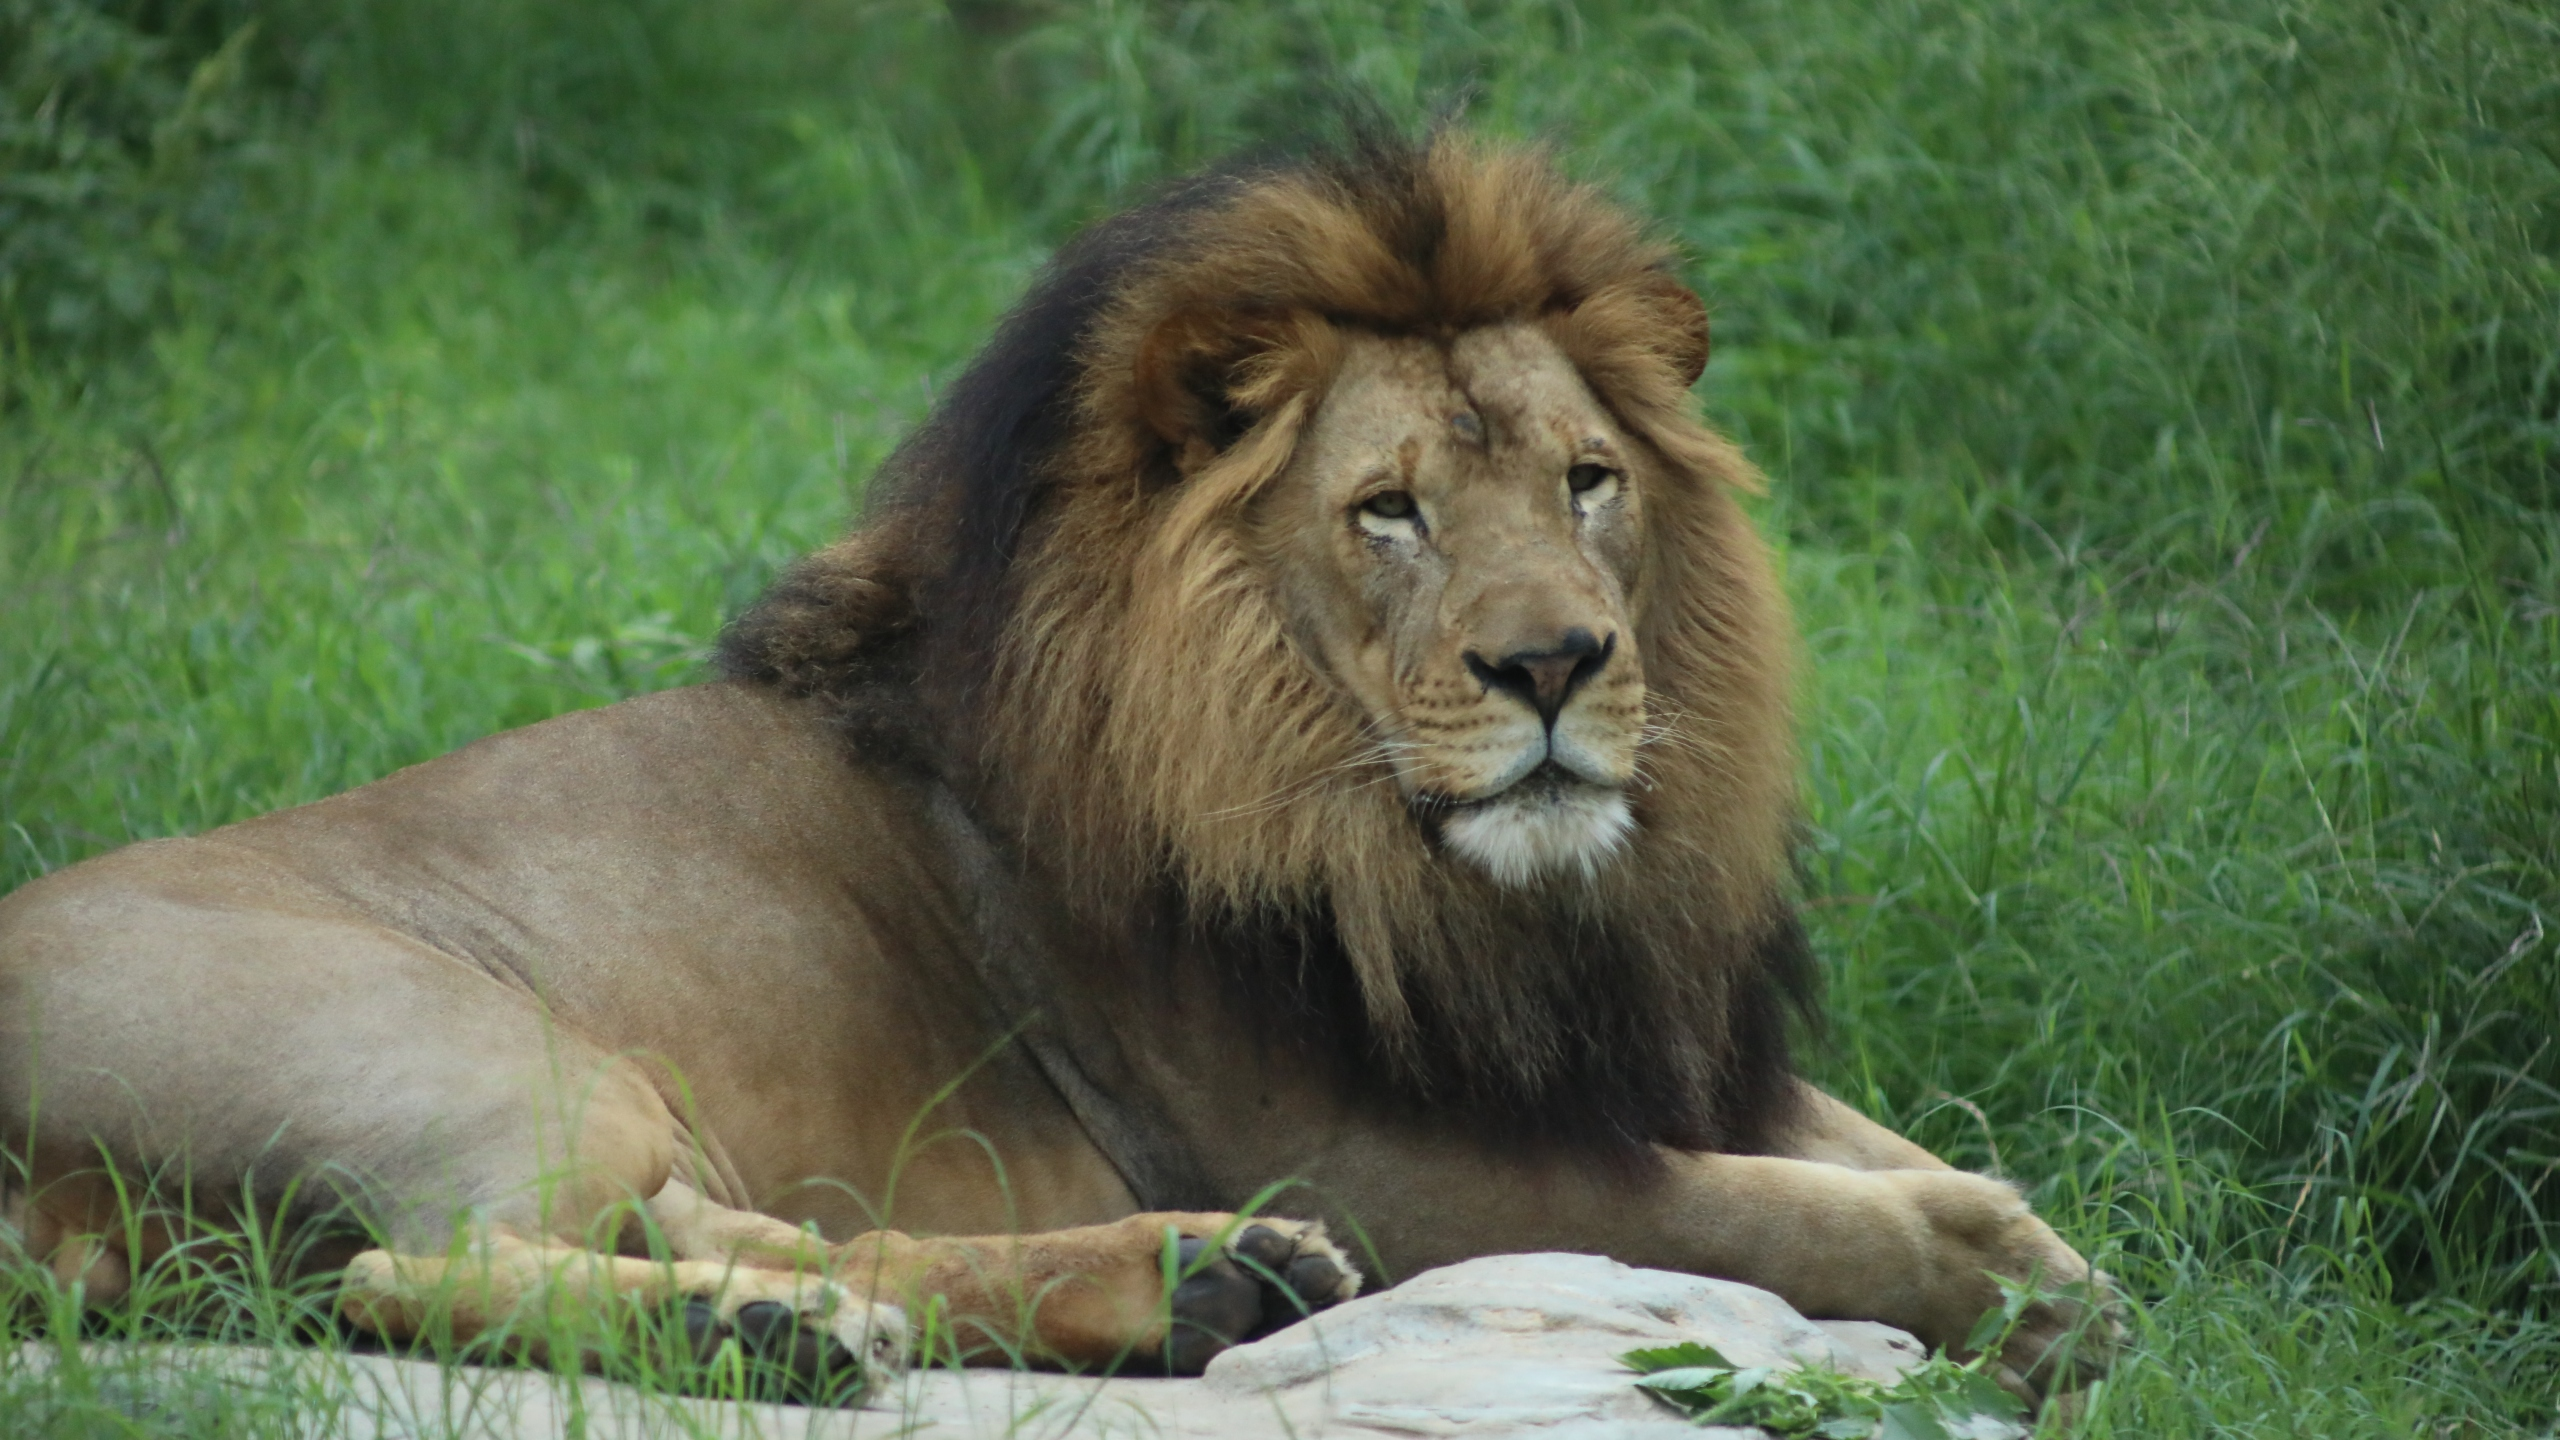 The San Antonio Zoo will vaccine its animals against COVID-19 with a shot from the company Zoetis, first starting with lions, tigers and primates. (San Antonio Zoo photo)